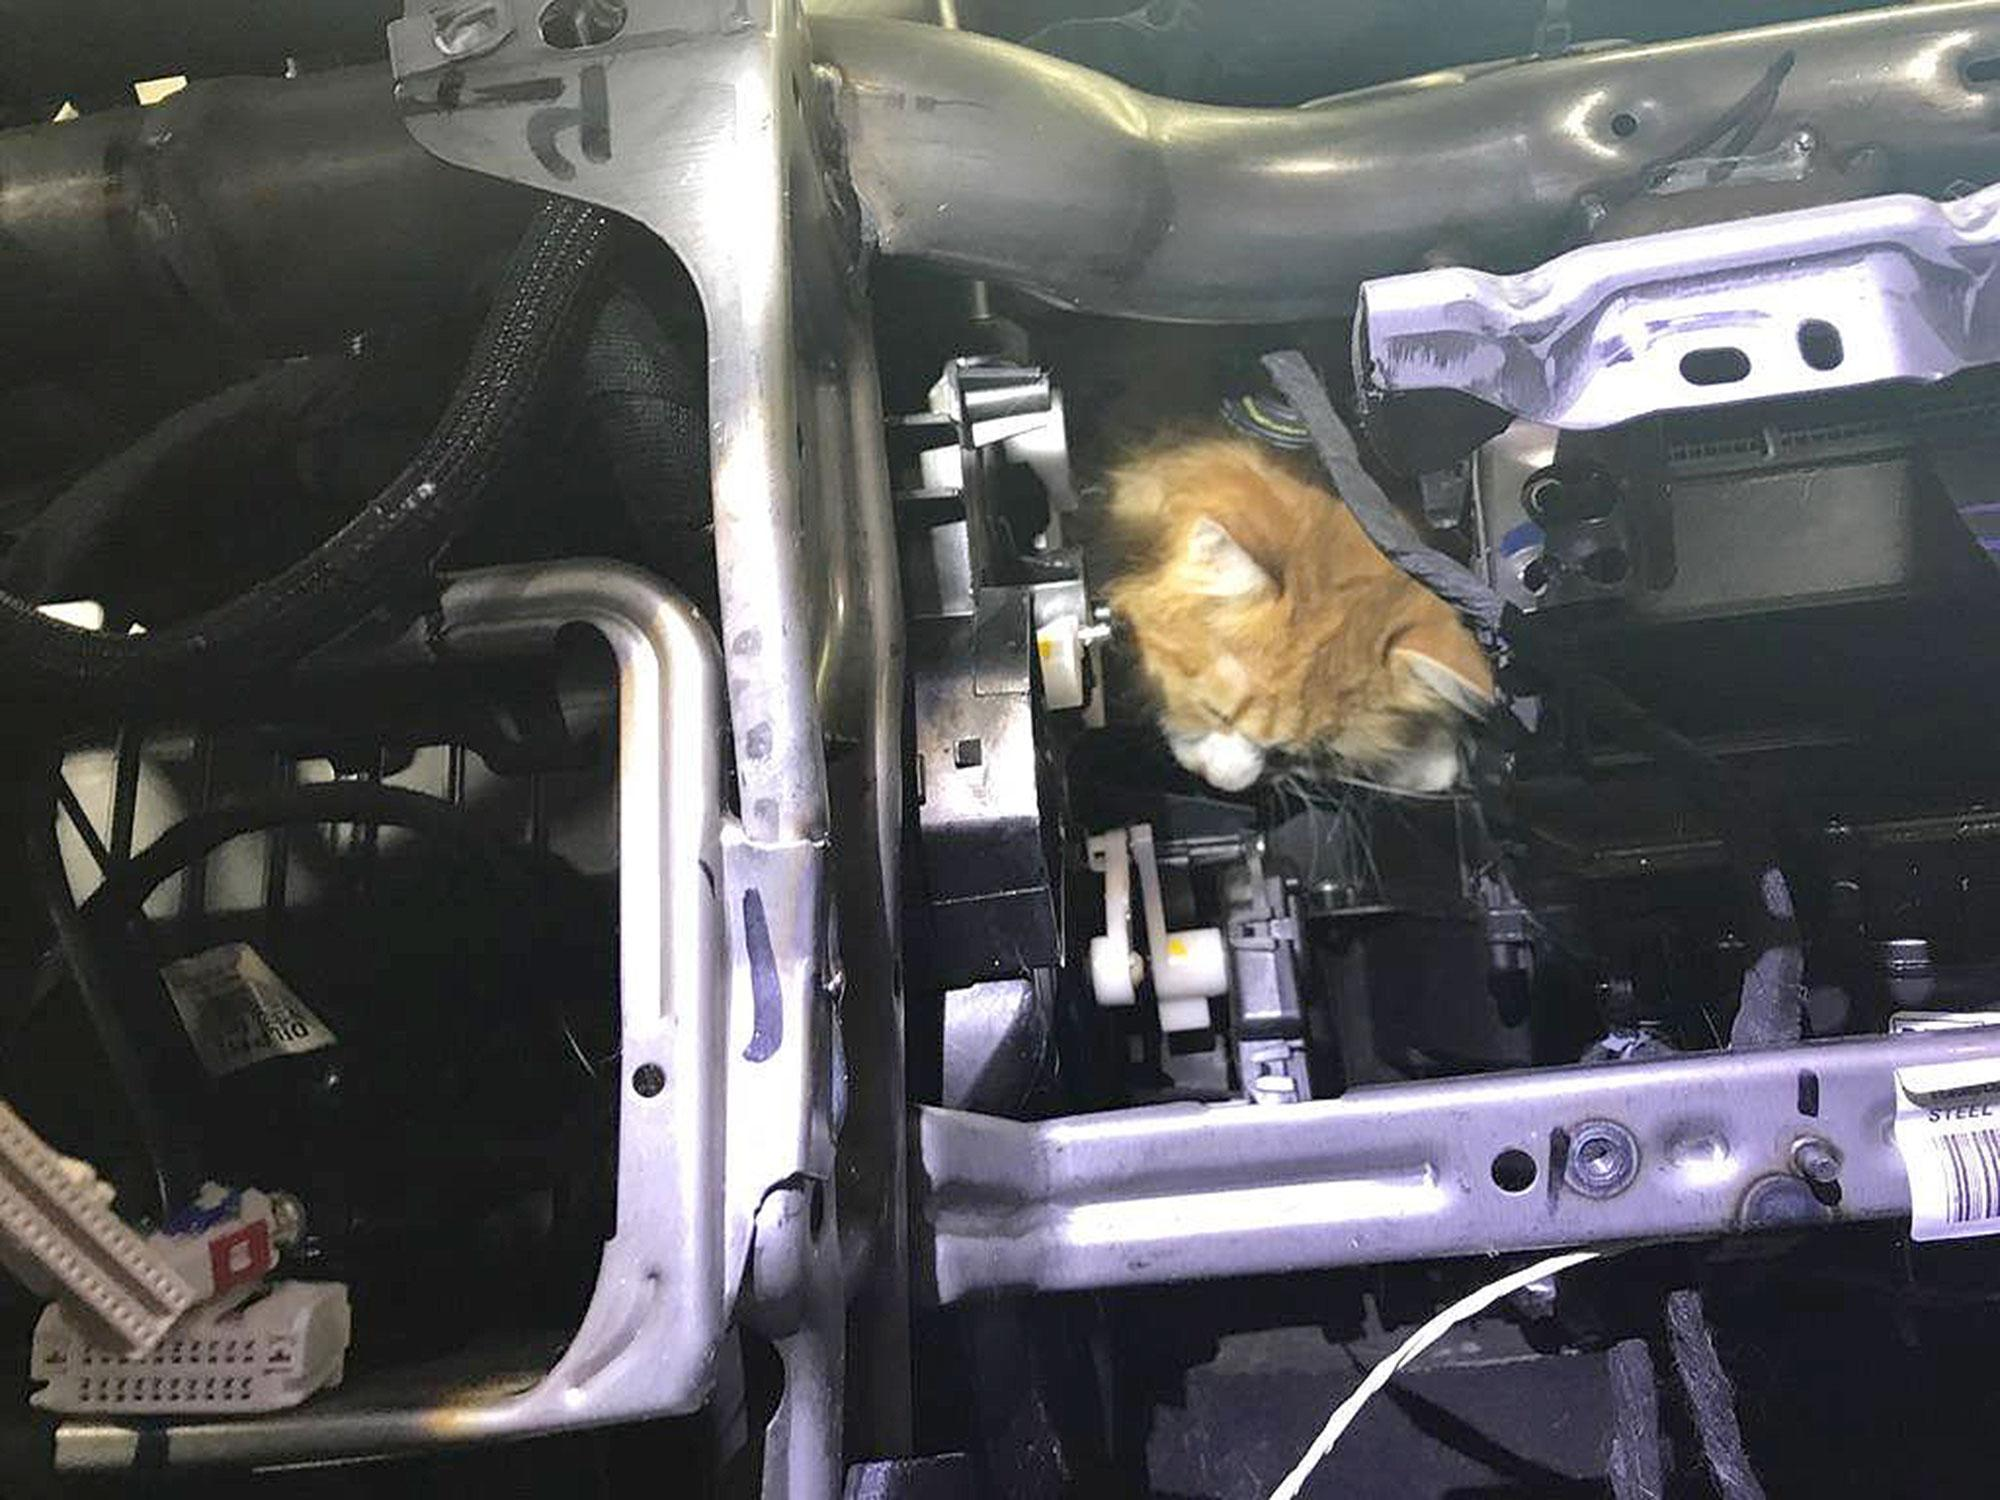 Photos Rescuers Work Together To Help Cat Stuck In Suv